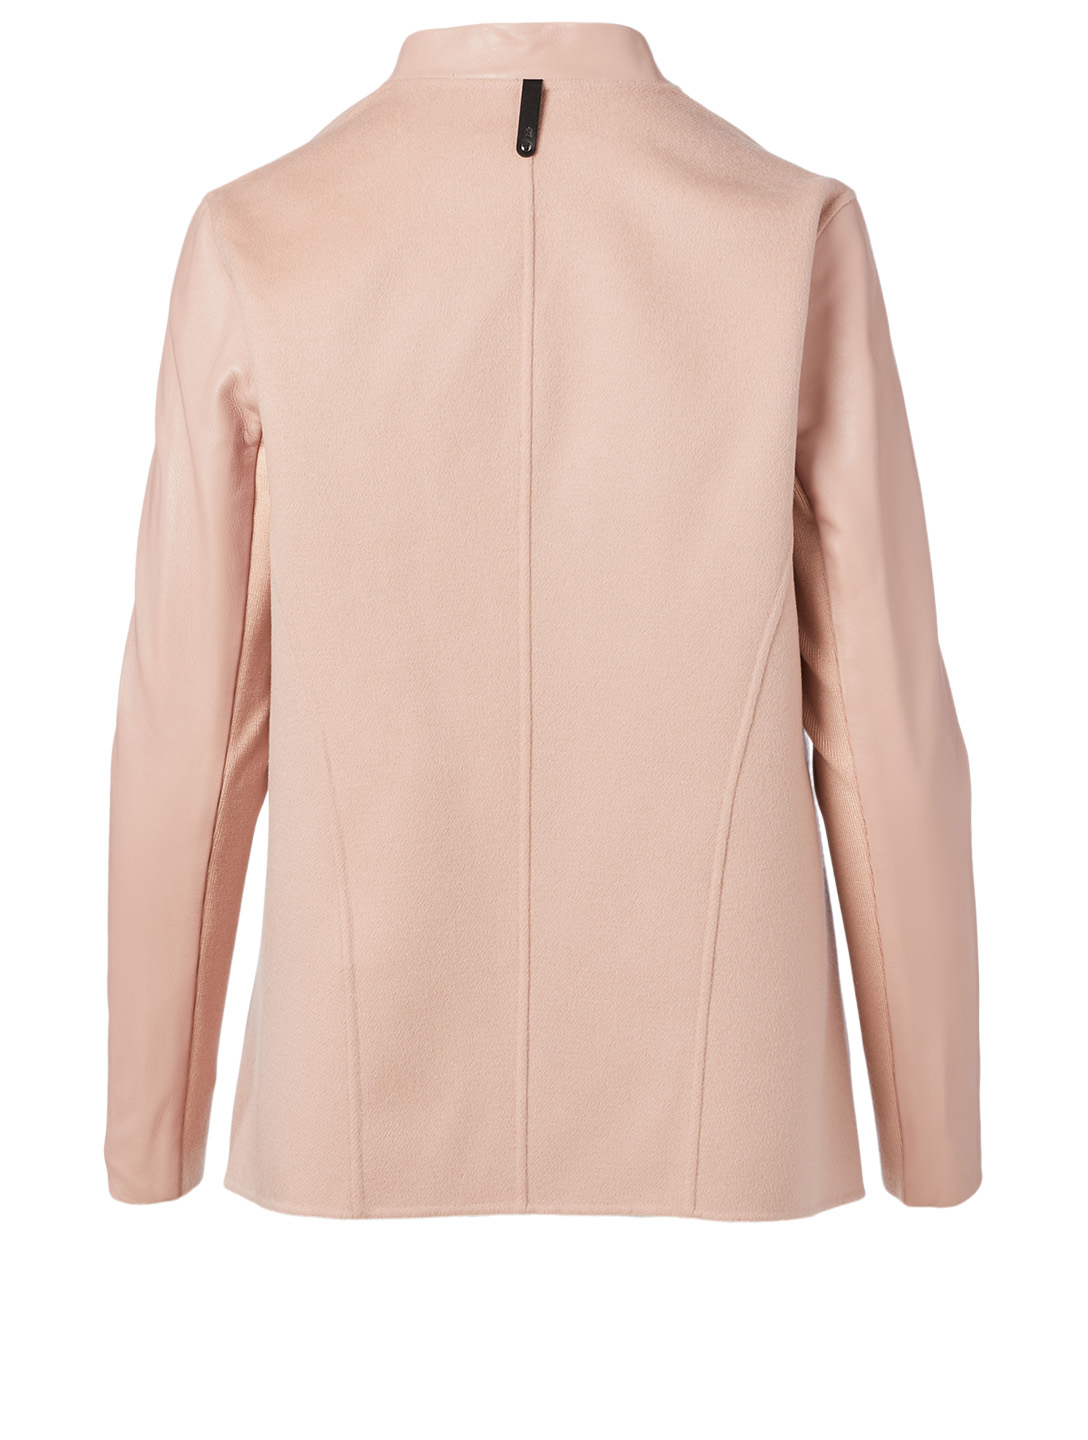 MACKAGE Valla Wool And Leather Coat Women's Pink